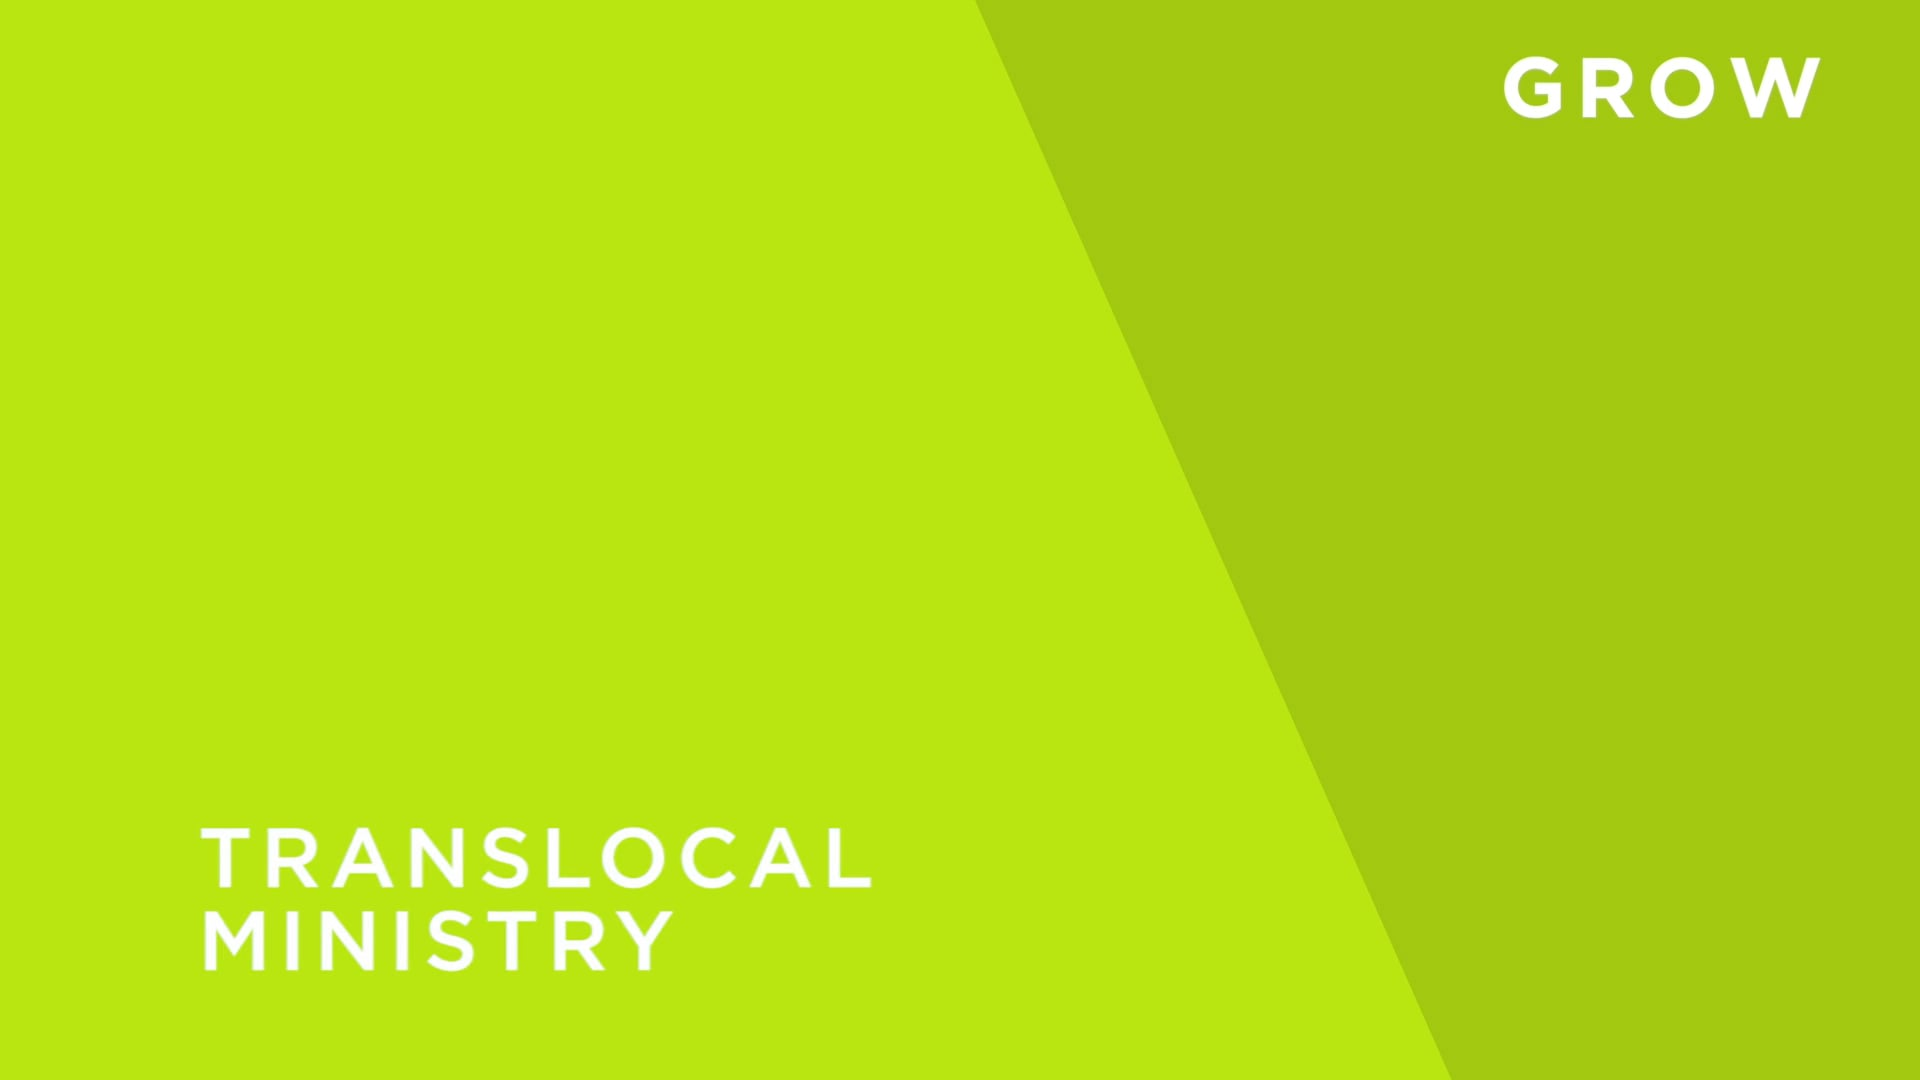 Translocal Ministry